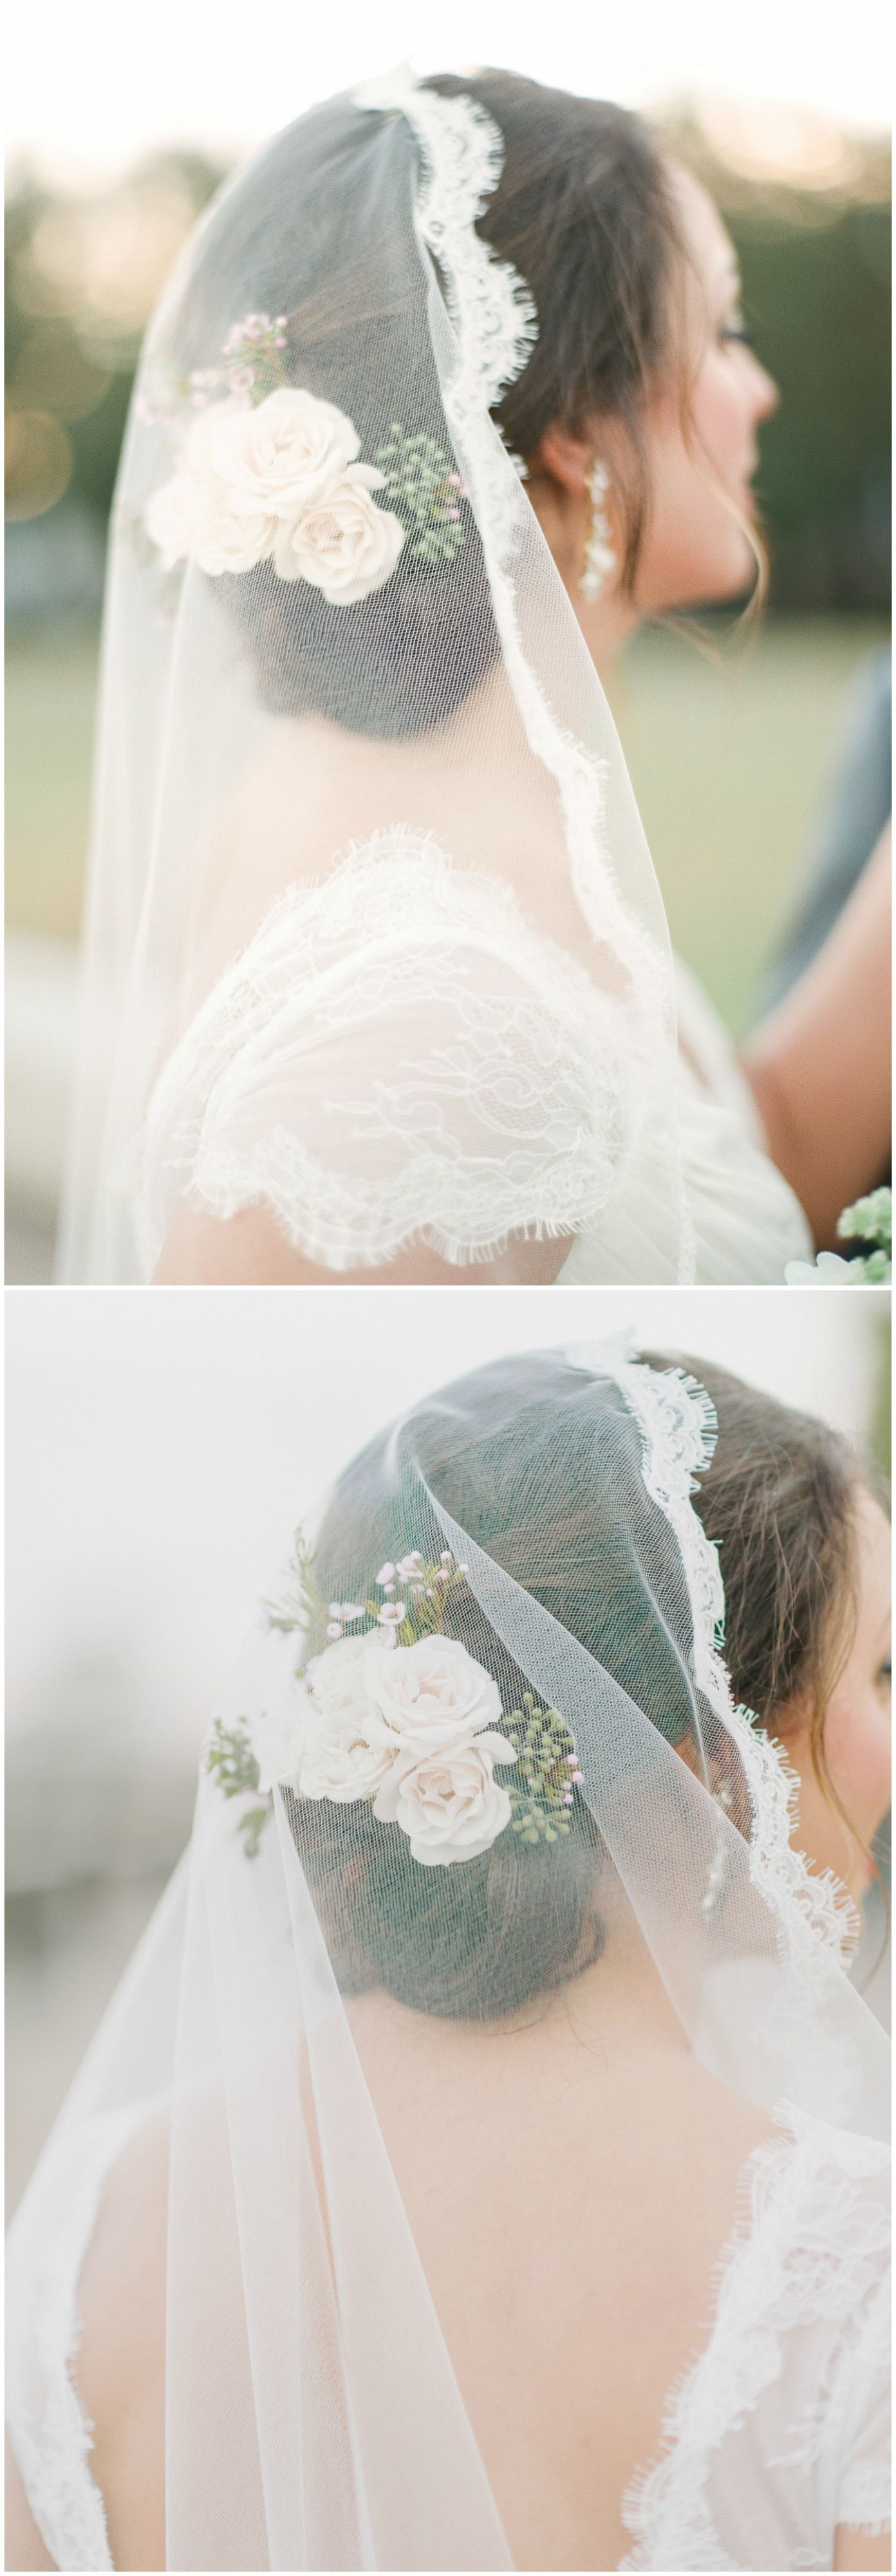 Wedding hair ideas lacetrimmed veil pink roses low chignon